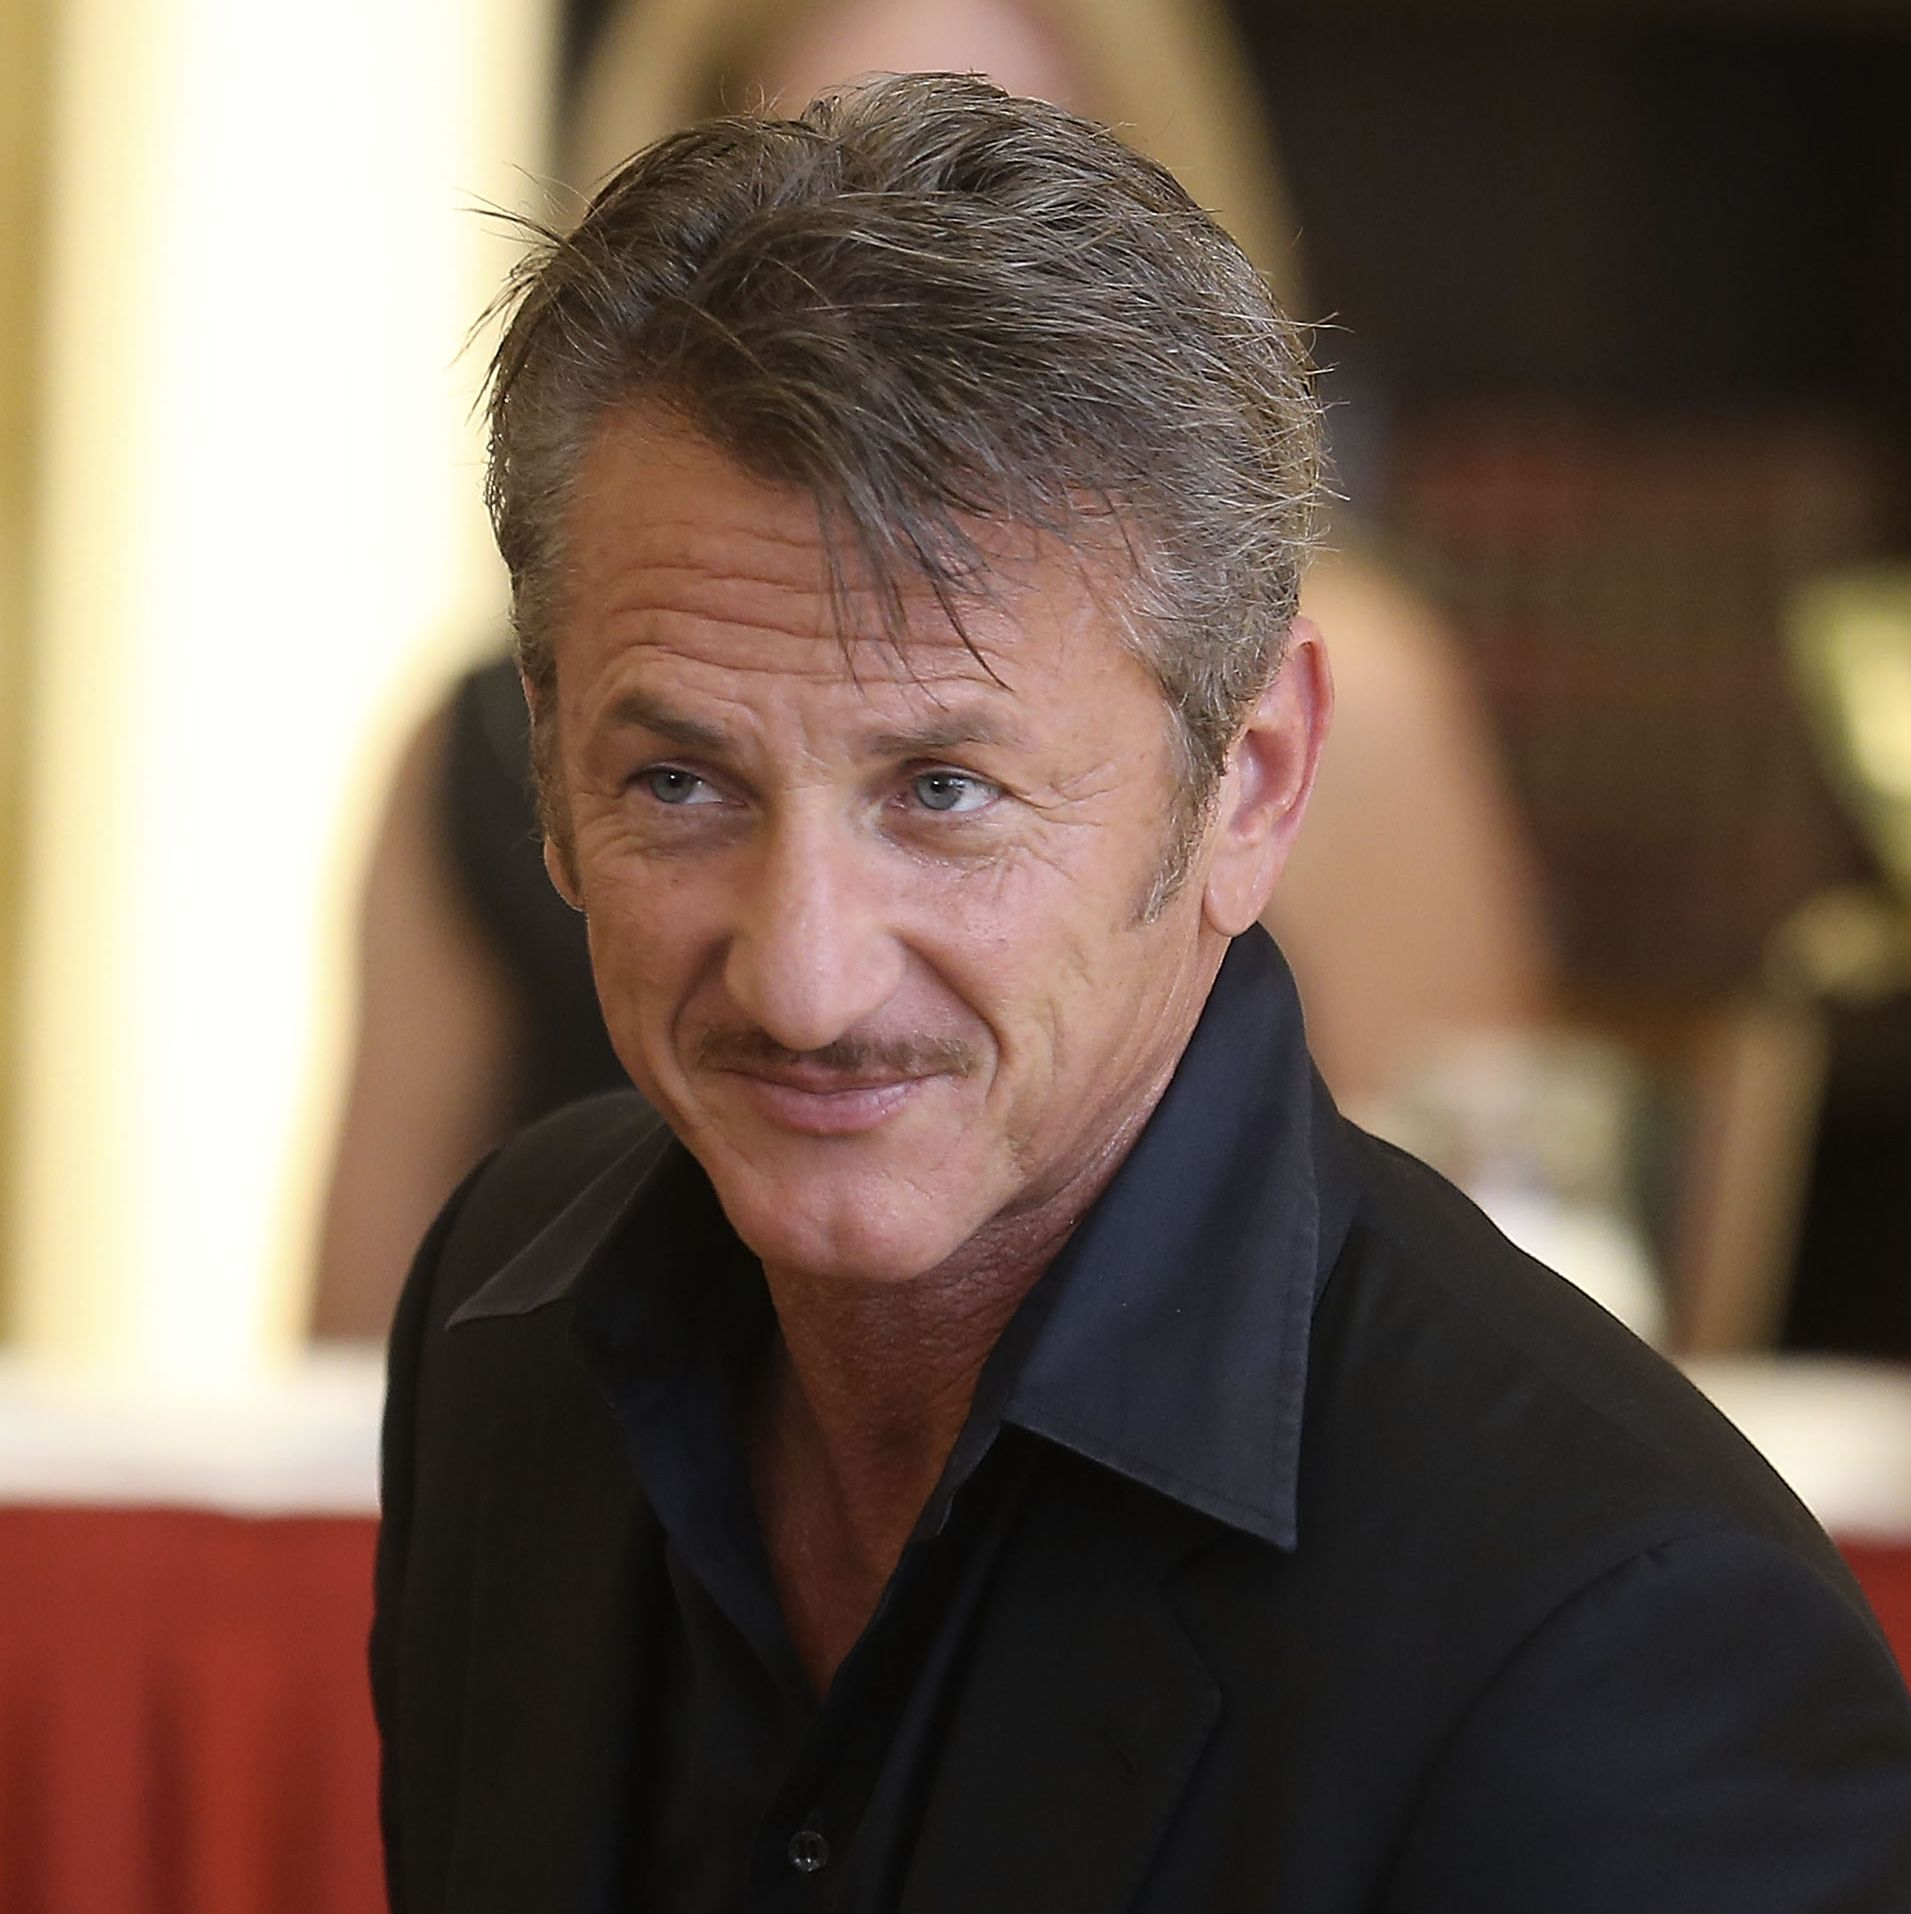 2001: Sean Penn A tiny, trimmed mustache became Penn's defining look in the early aughts.